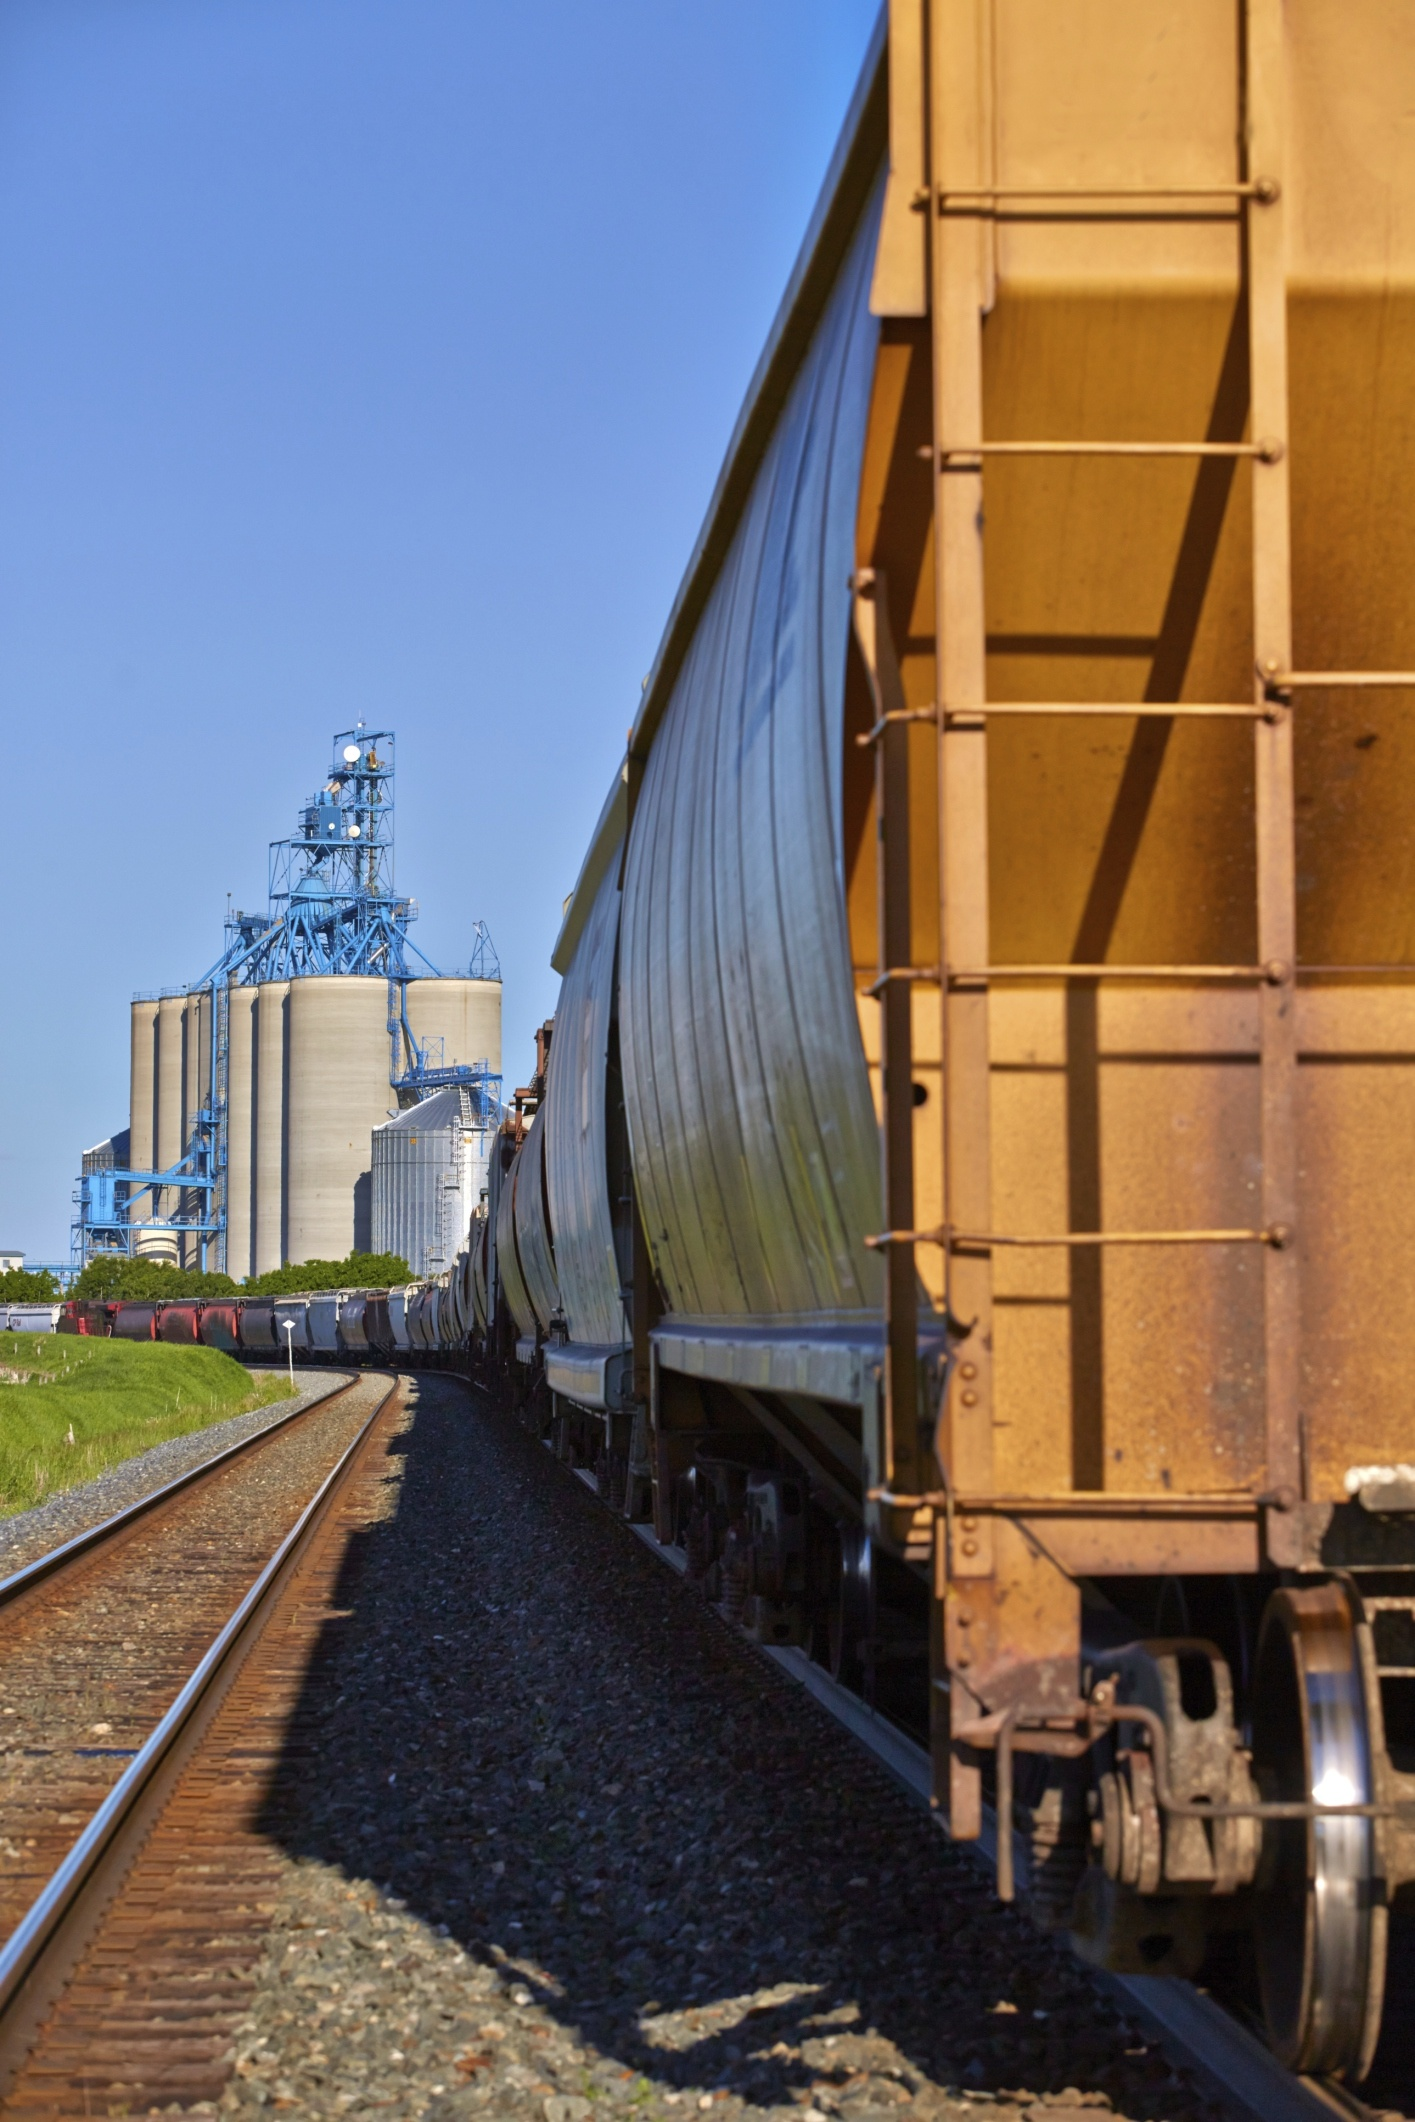 How Rail Car Spotting And Orientation Dramatically Affect Rail Safety